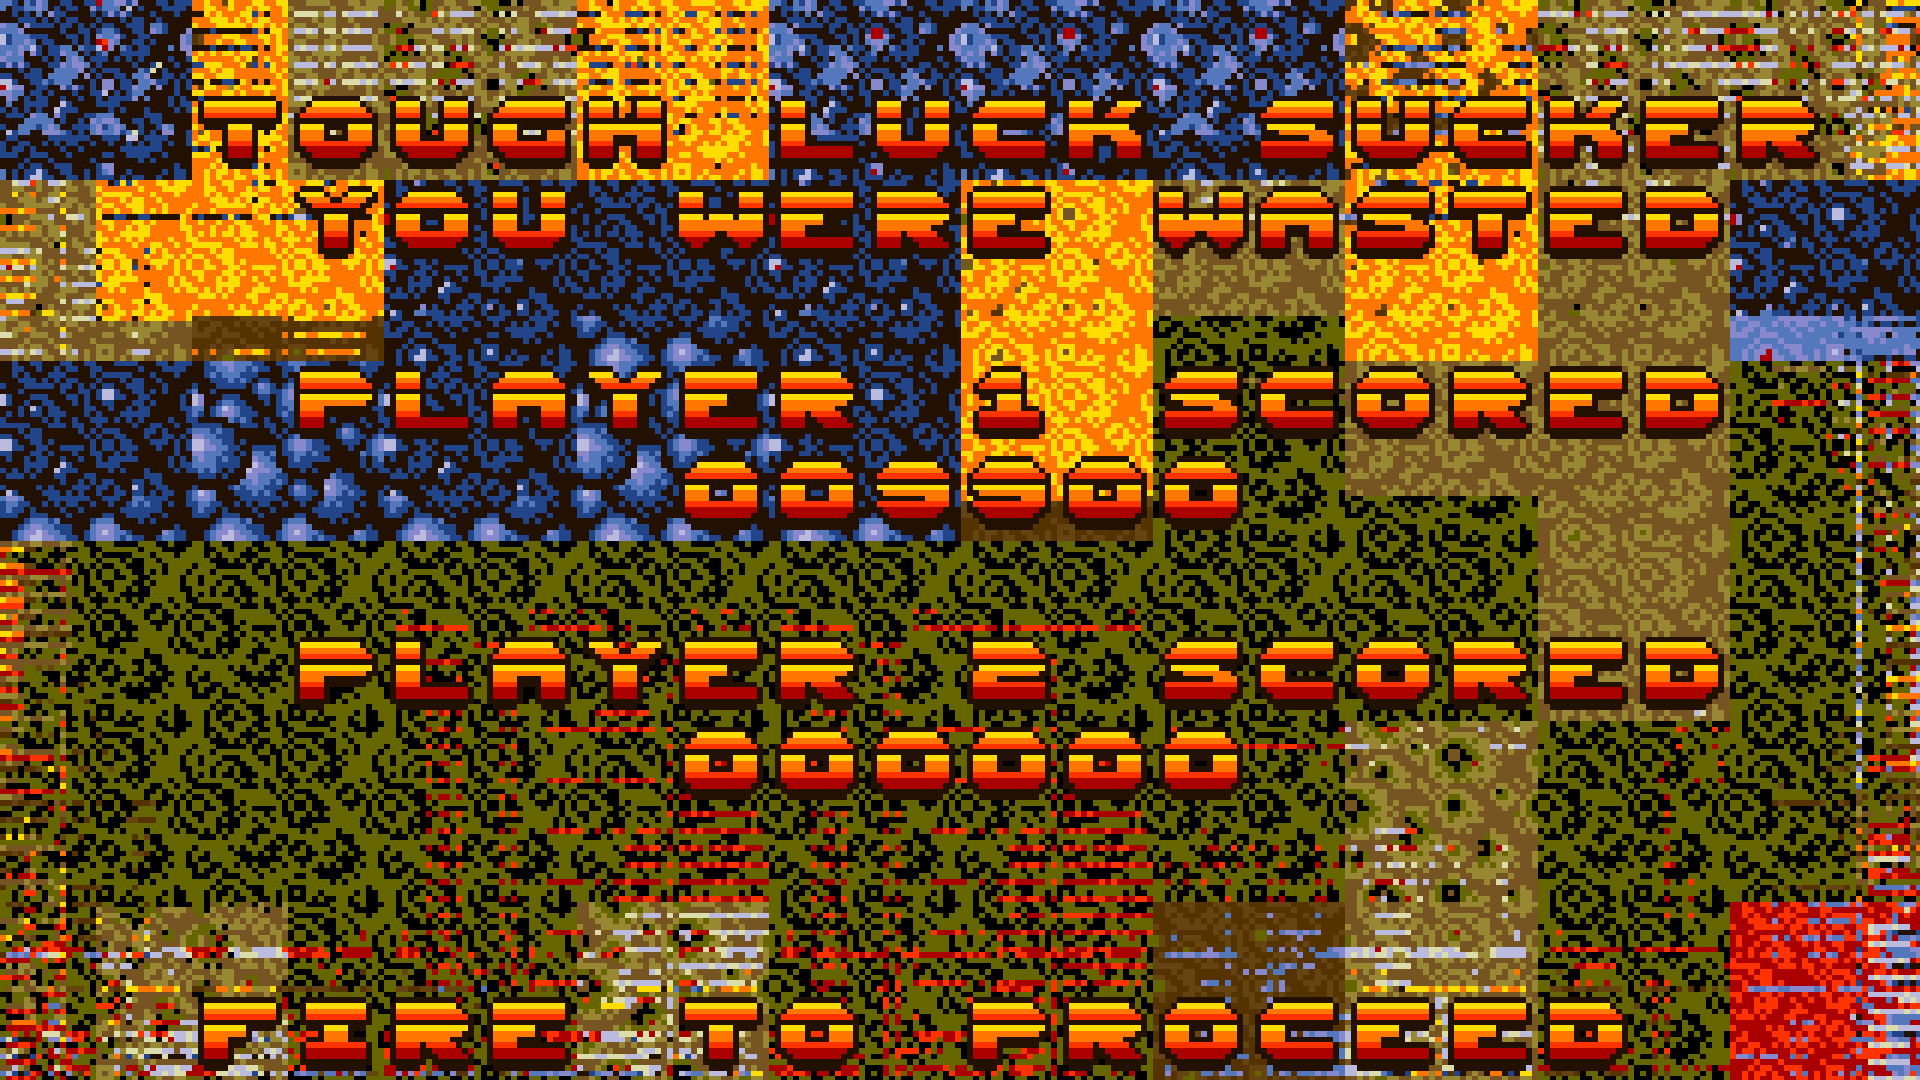 TheTrickster: Blood Money [Patient] (Amiga Emulated) 9,900 points on 2015-07-25 18:37:59